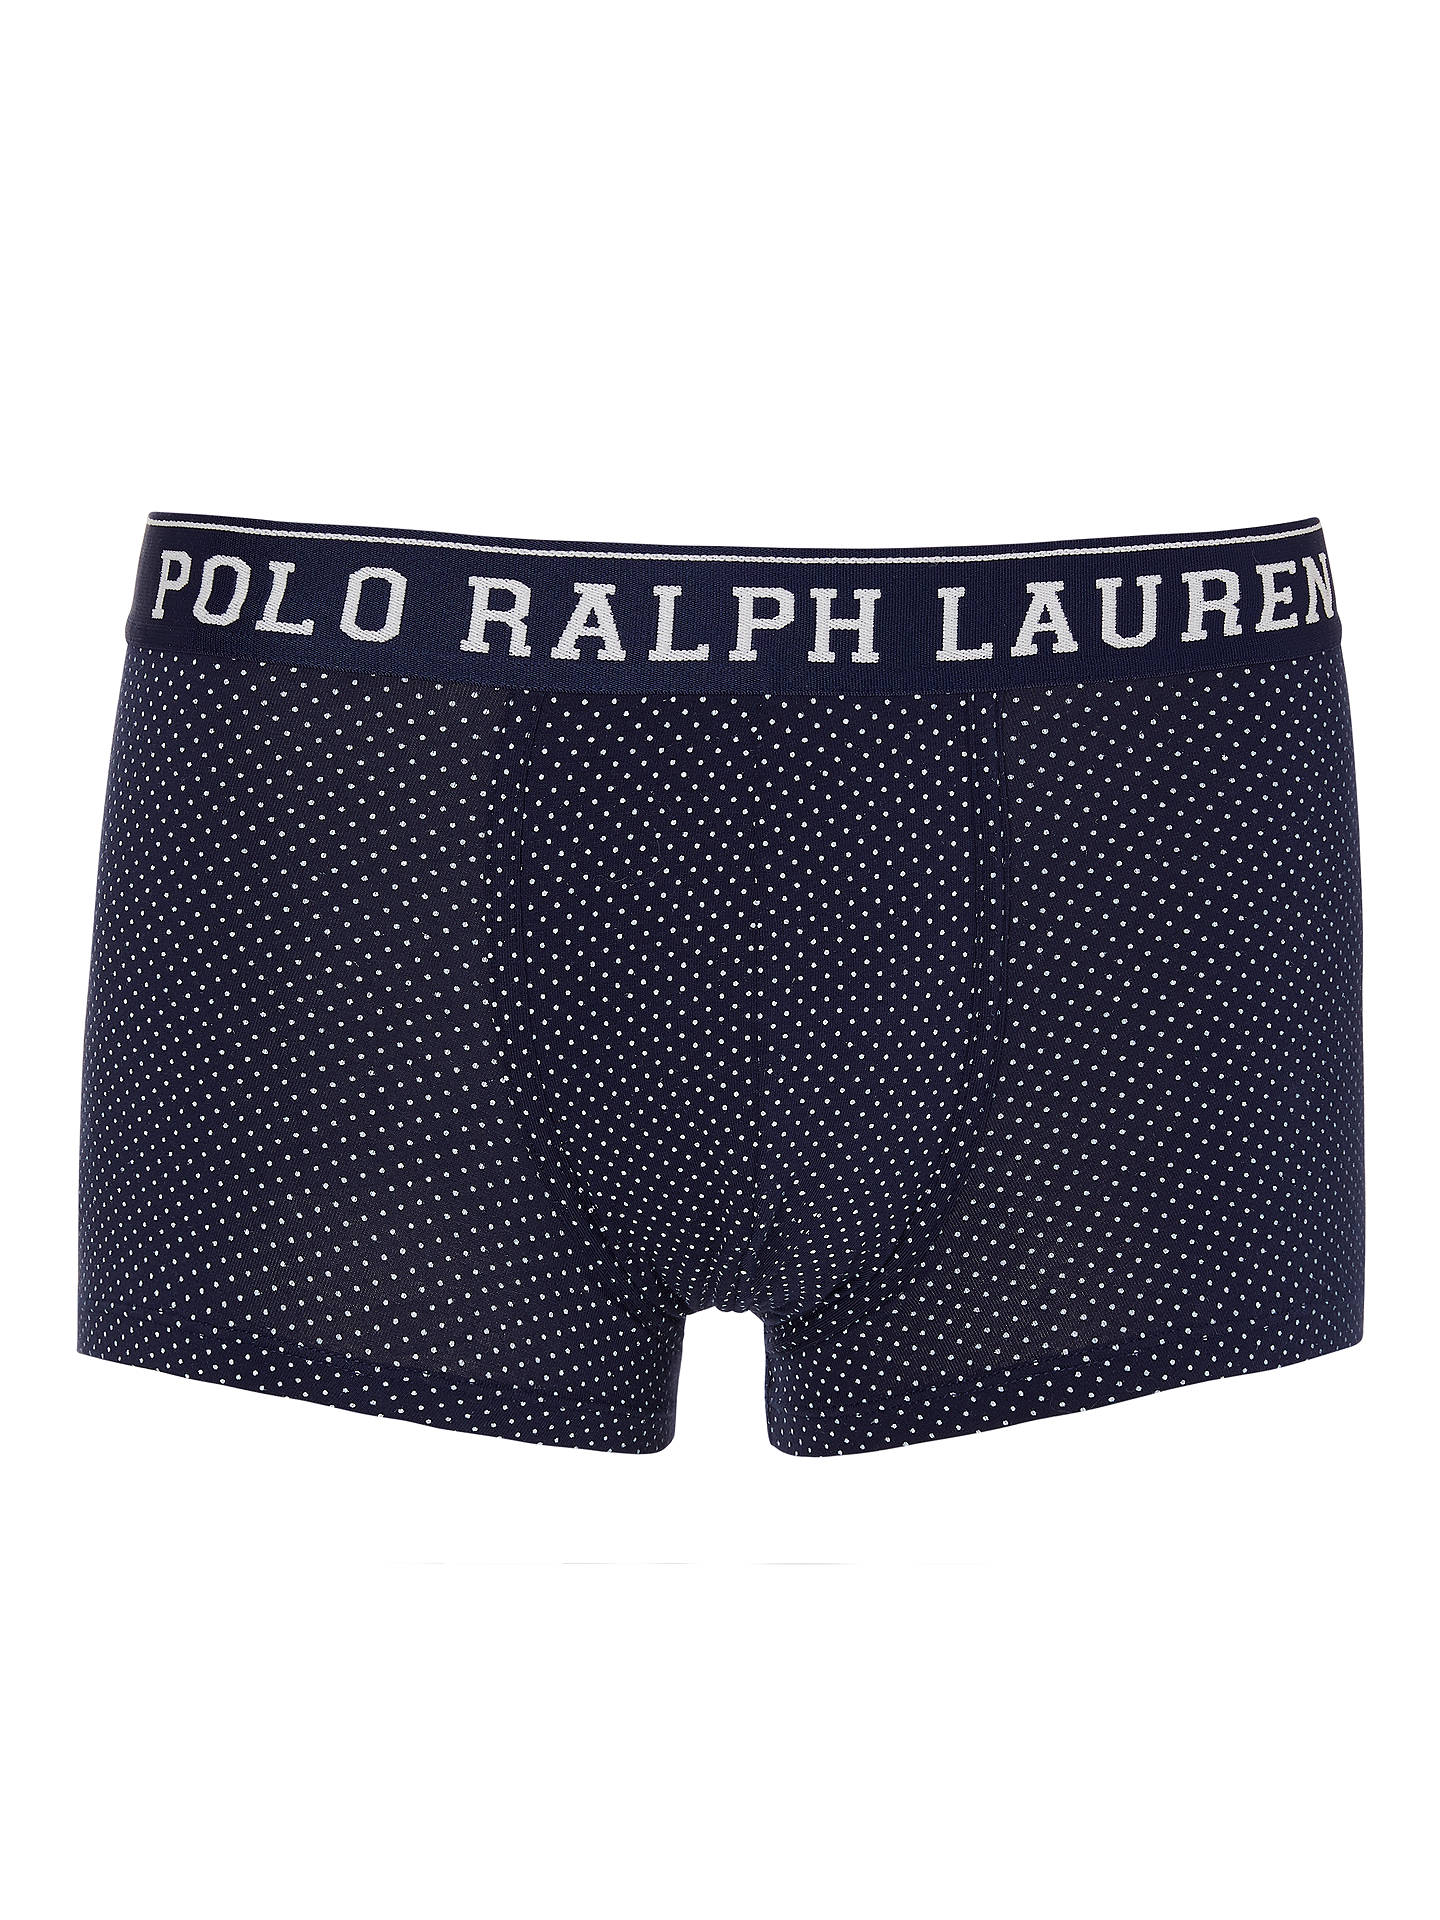 BuyPolo Ralph Lauren Cruise Dot Trunks, Navy, M Online at johnlewis.com